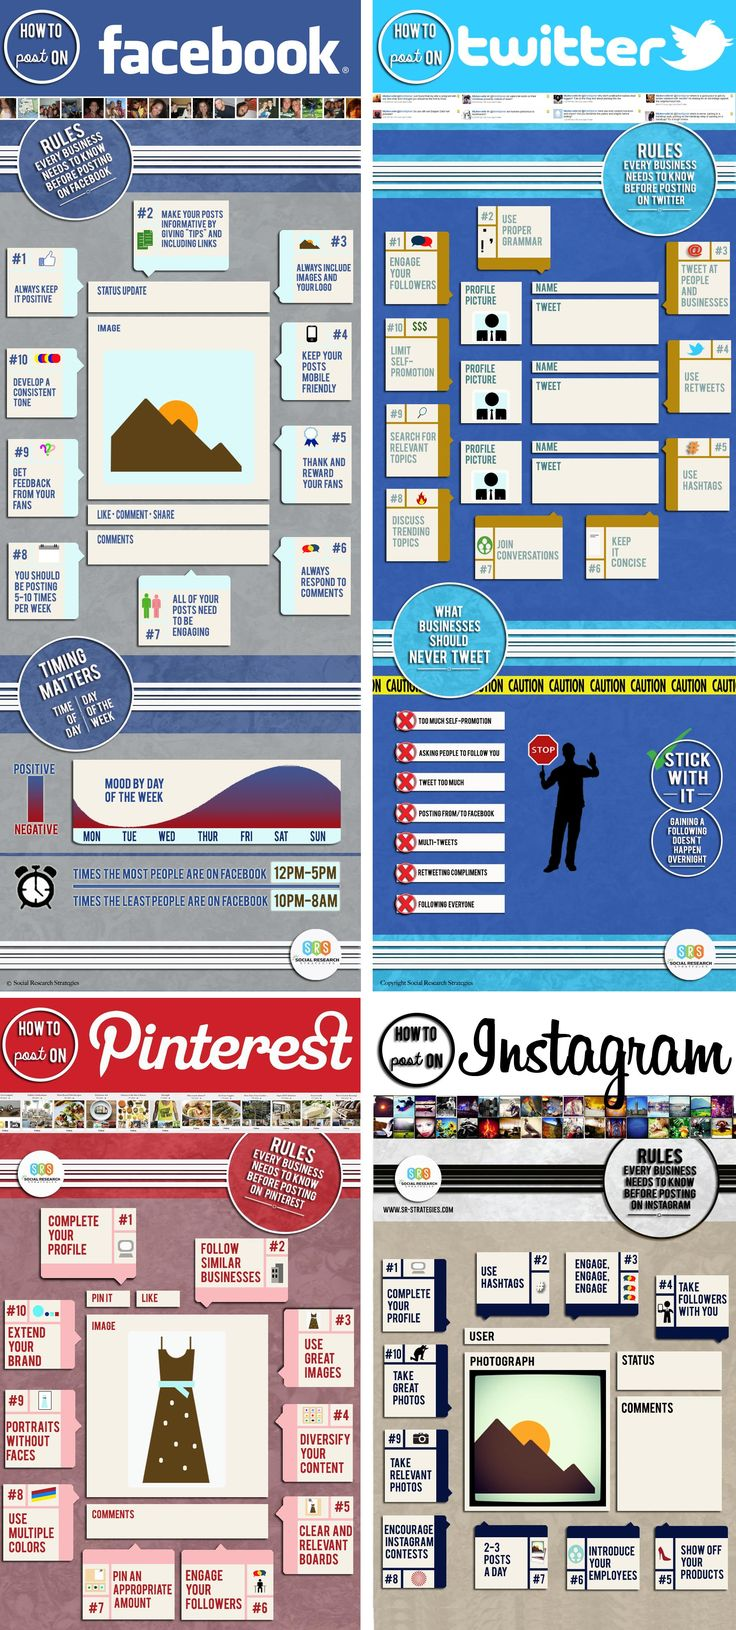 10 Rules That Every Business Needs To Know Before They Post On #Facebook, #Twitter, #Pinterest & #Instagram - #infographics #socialmedia